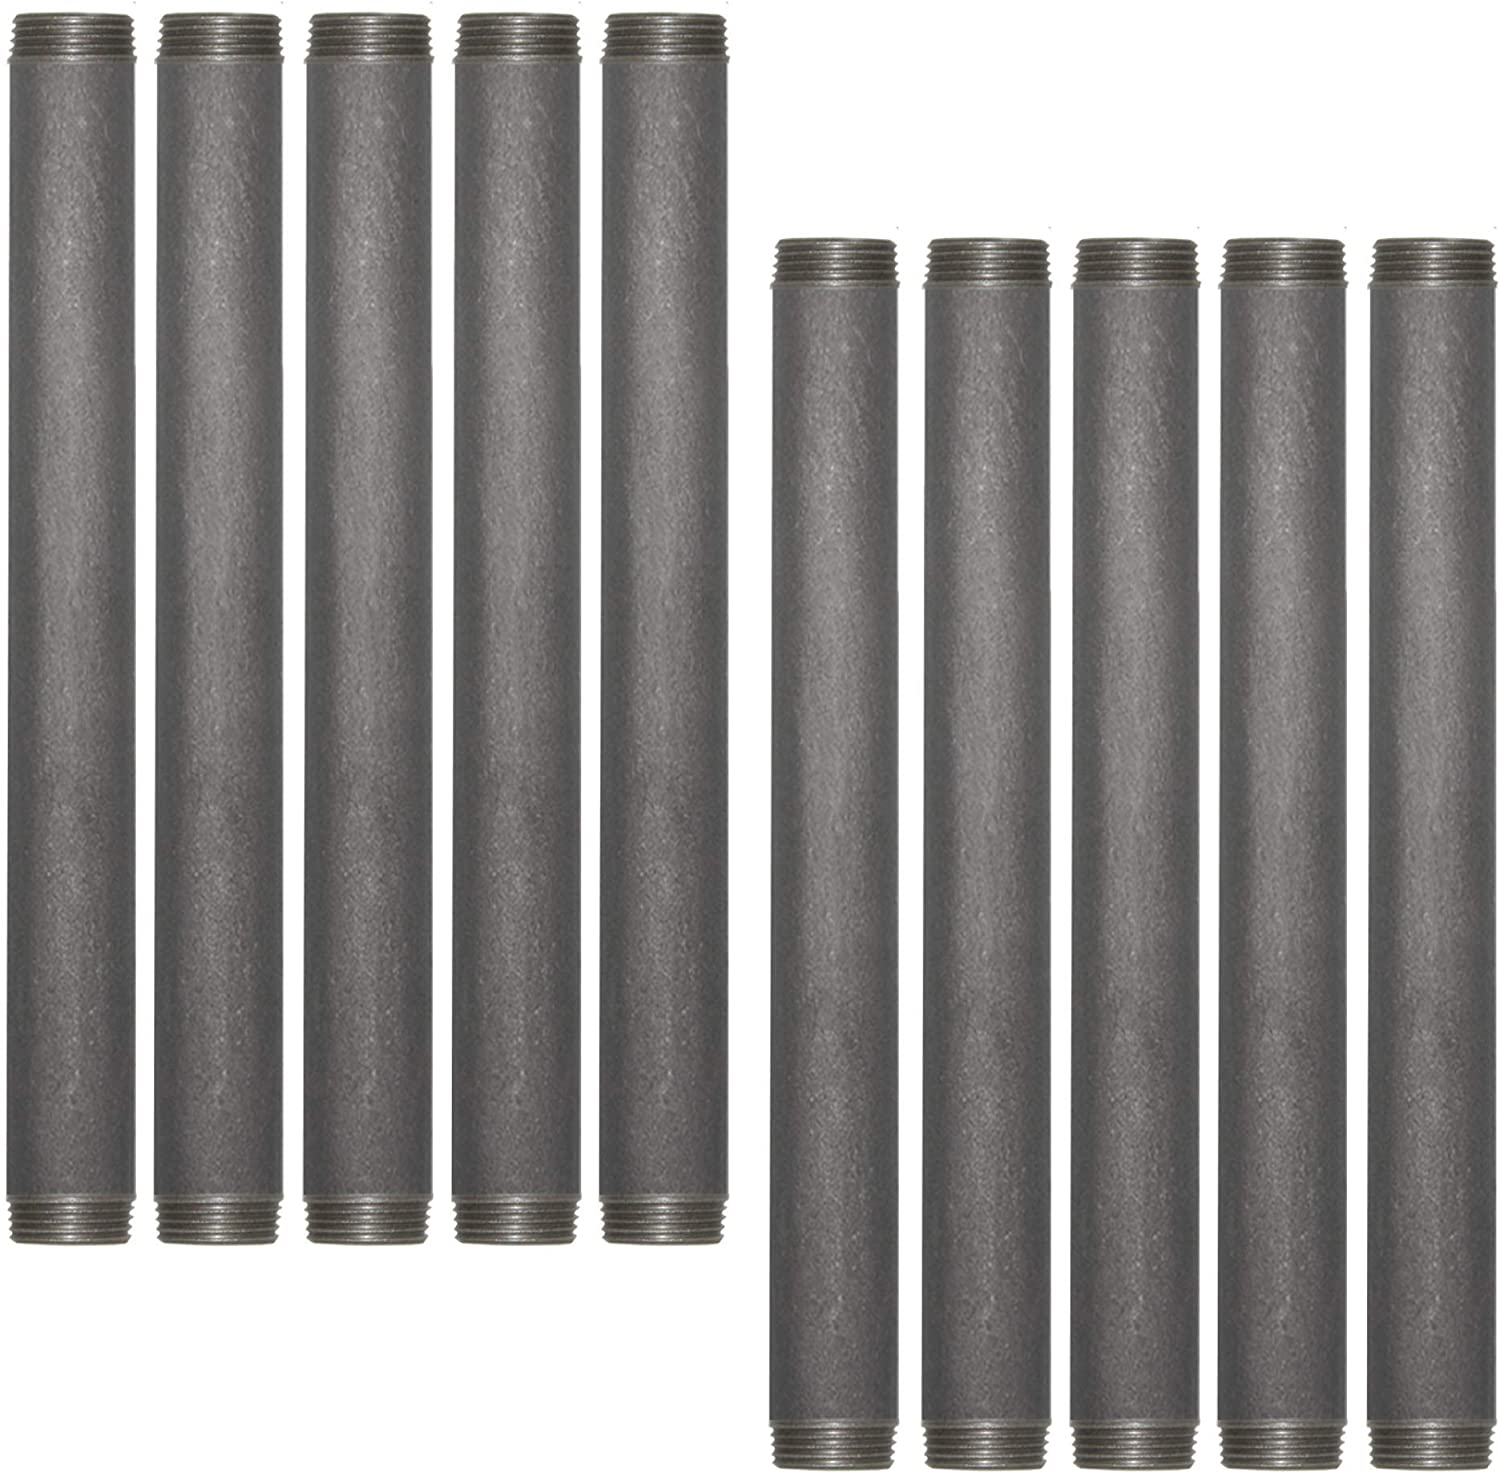 Brooklyn Pipe Sandblast Finish | 3/4 x 12 Inch Heavy Duty Schedule 40 Industrial Pipe | Threaded Pipe Nipple for DIY Shelving and Furniture, 10 Pack